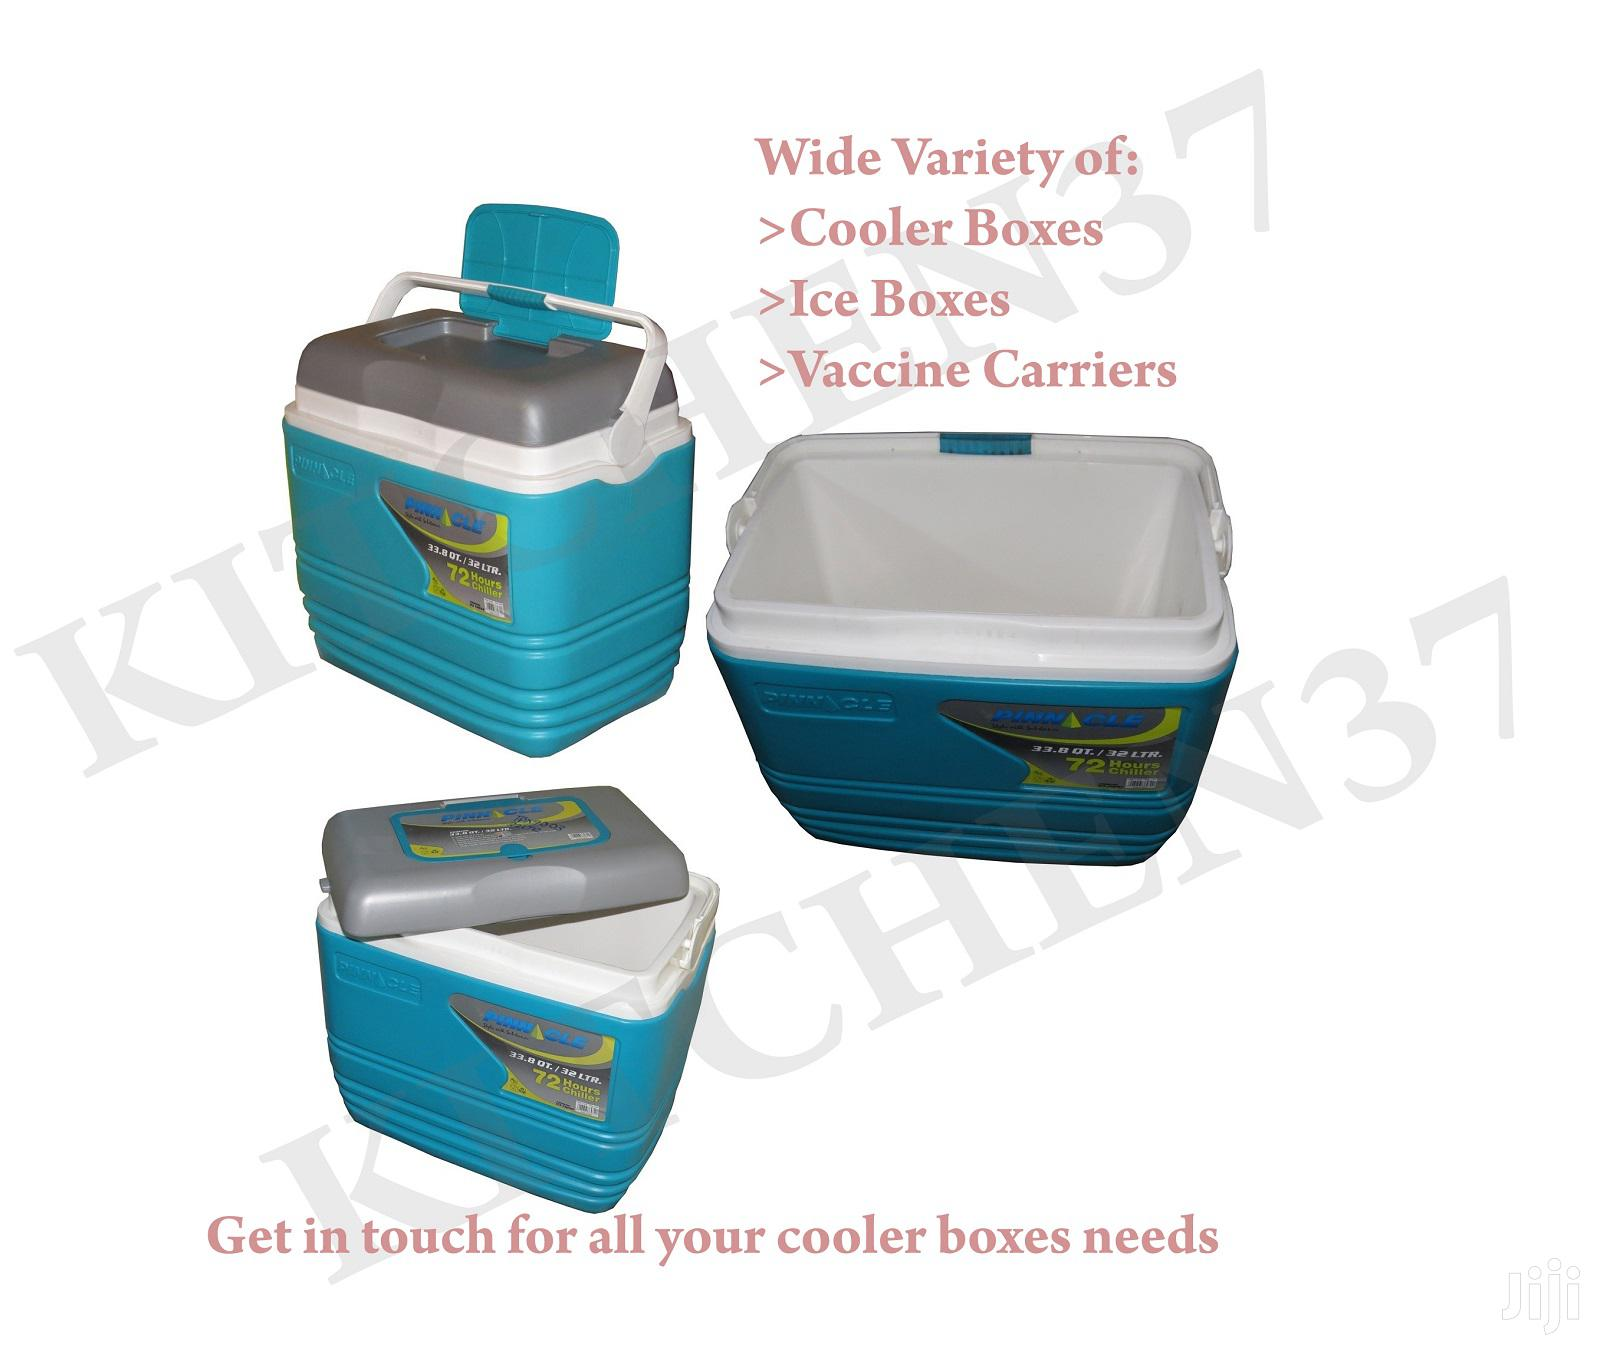 Cooler Box Ice Box Vaccine Carriers, Widest Range,All Sizes Available